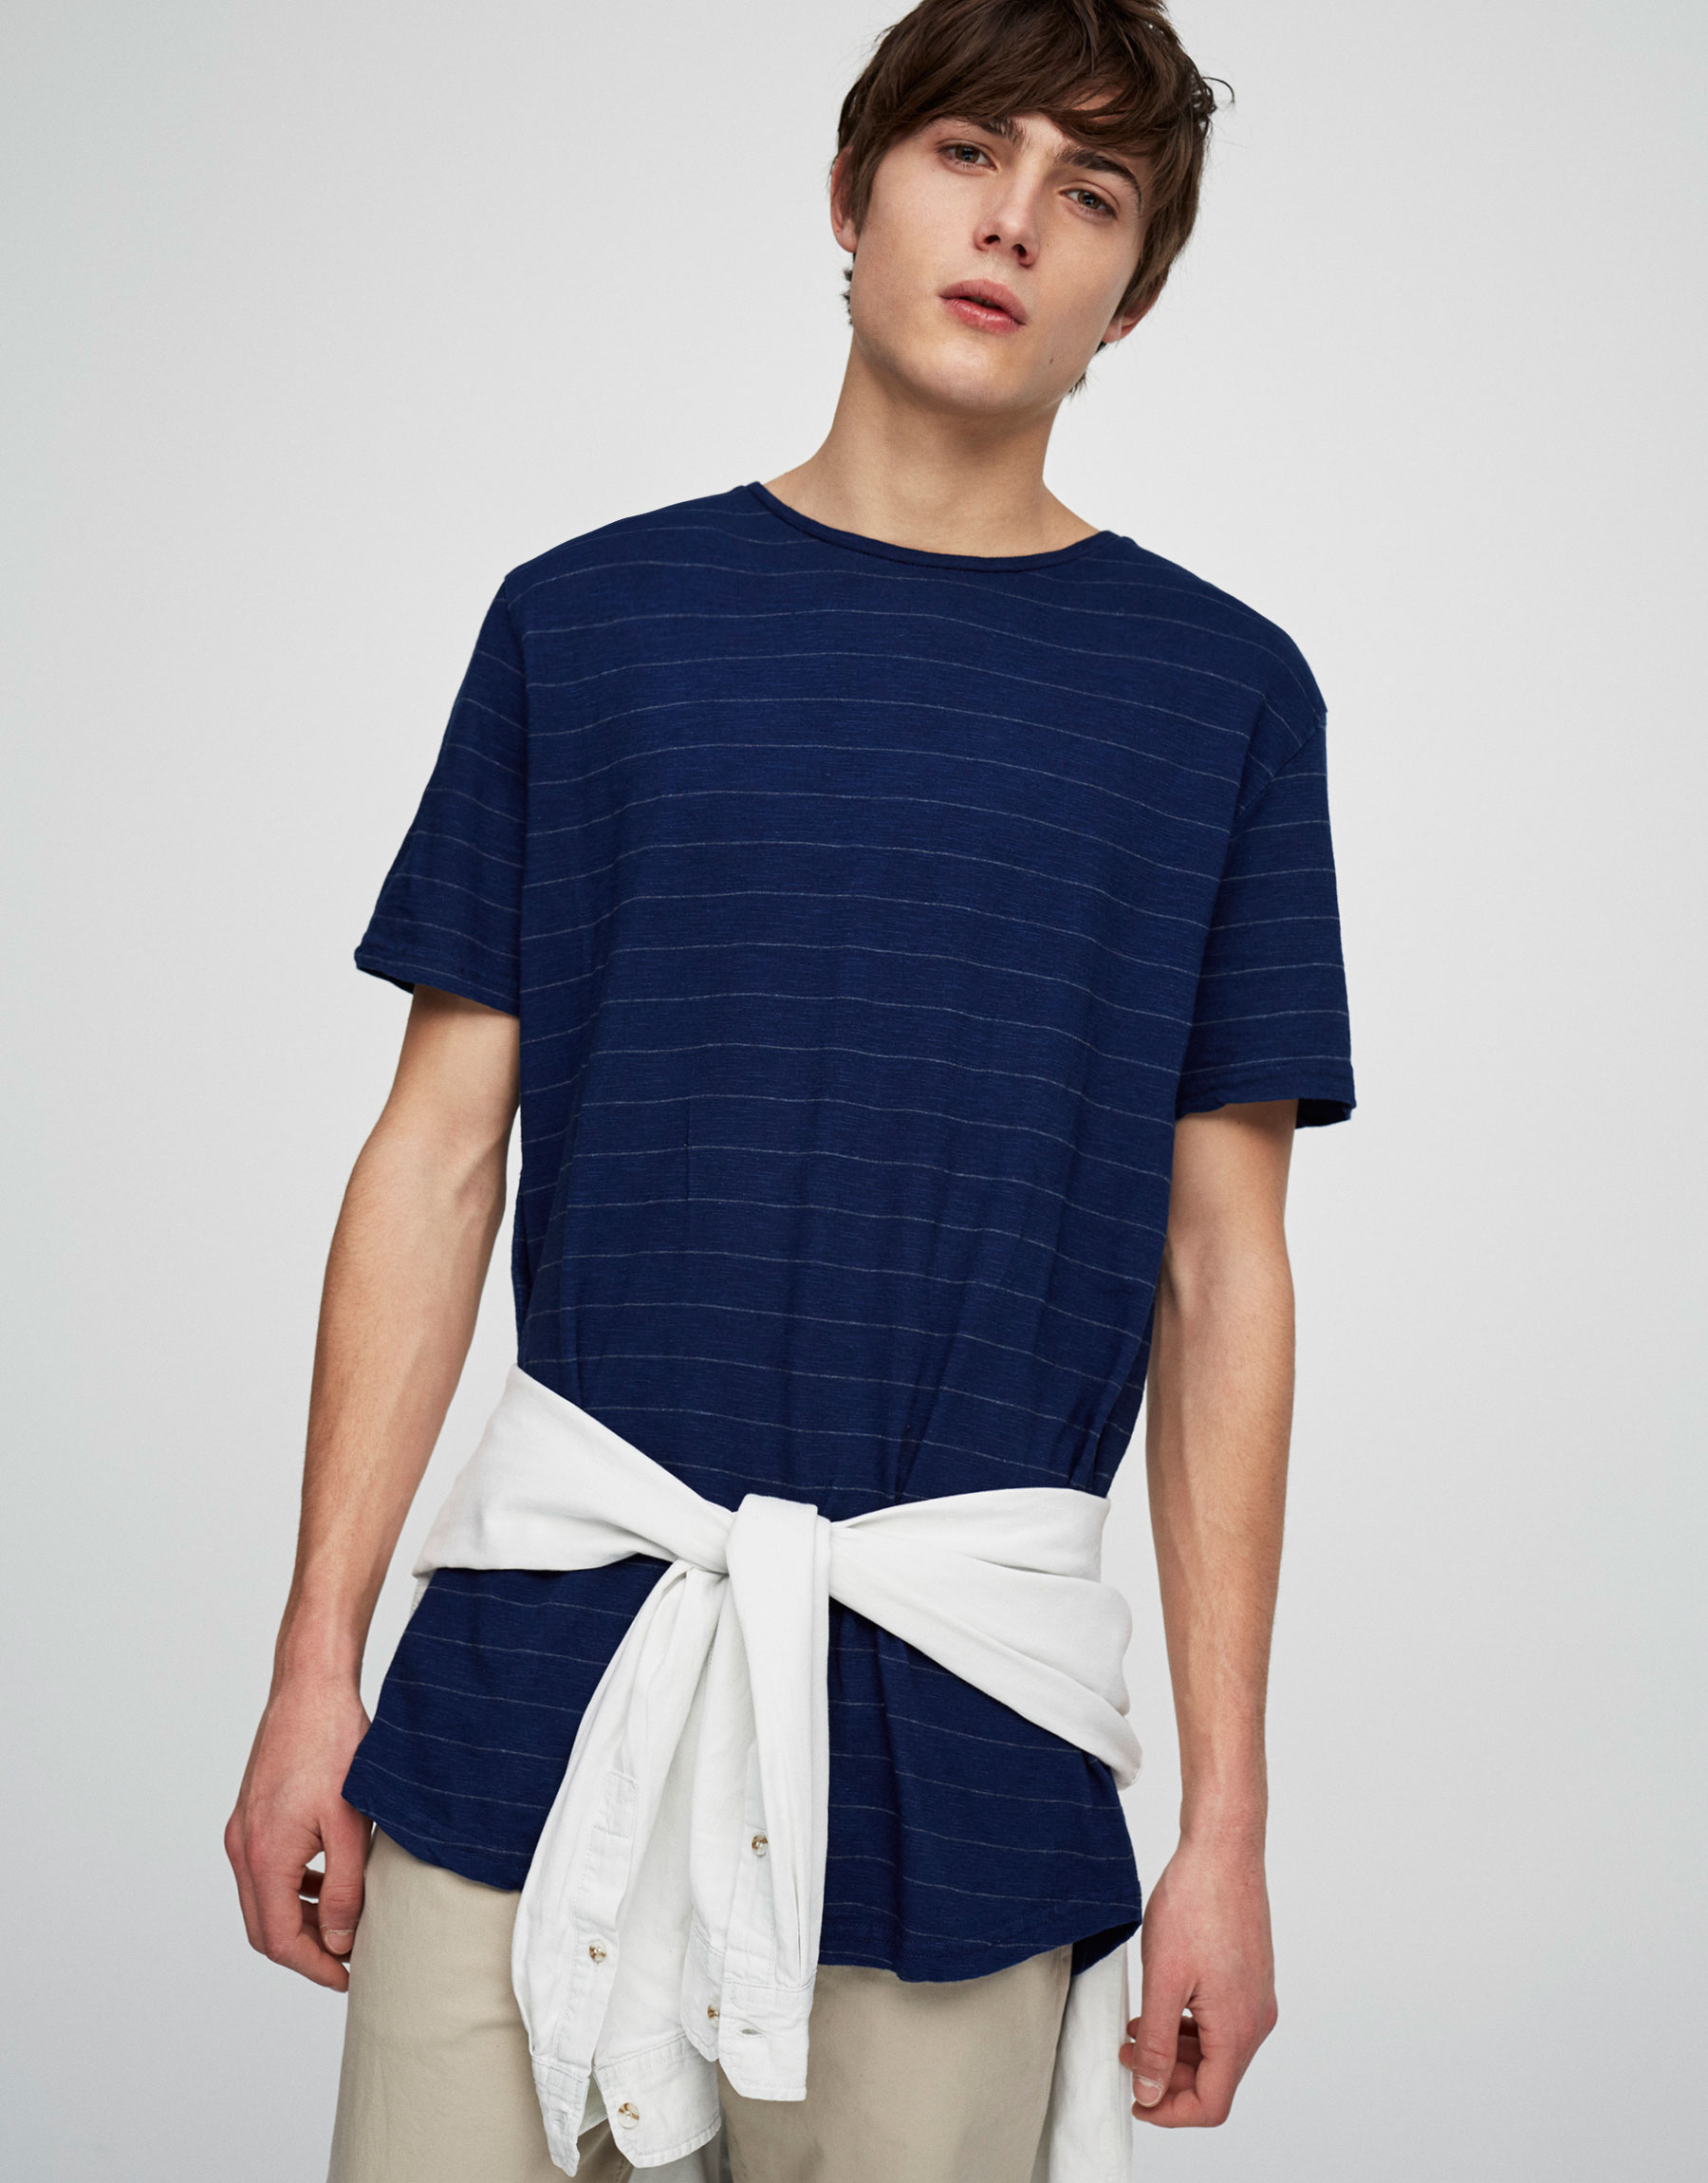 Striped indigo t-shirt